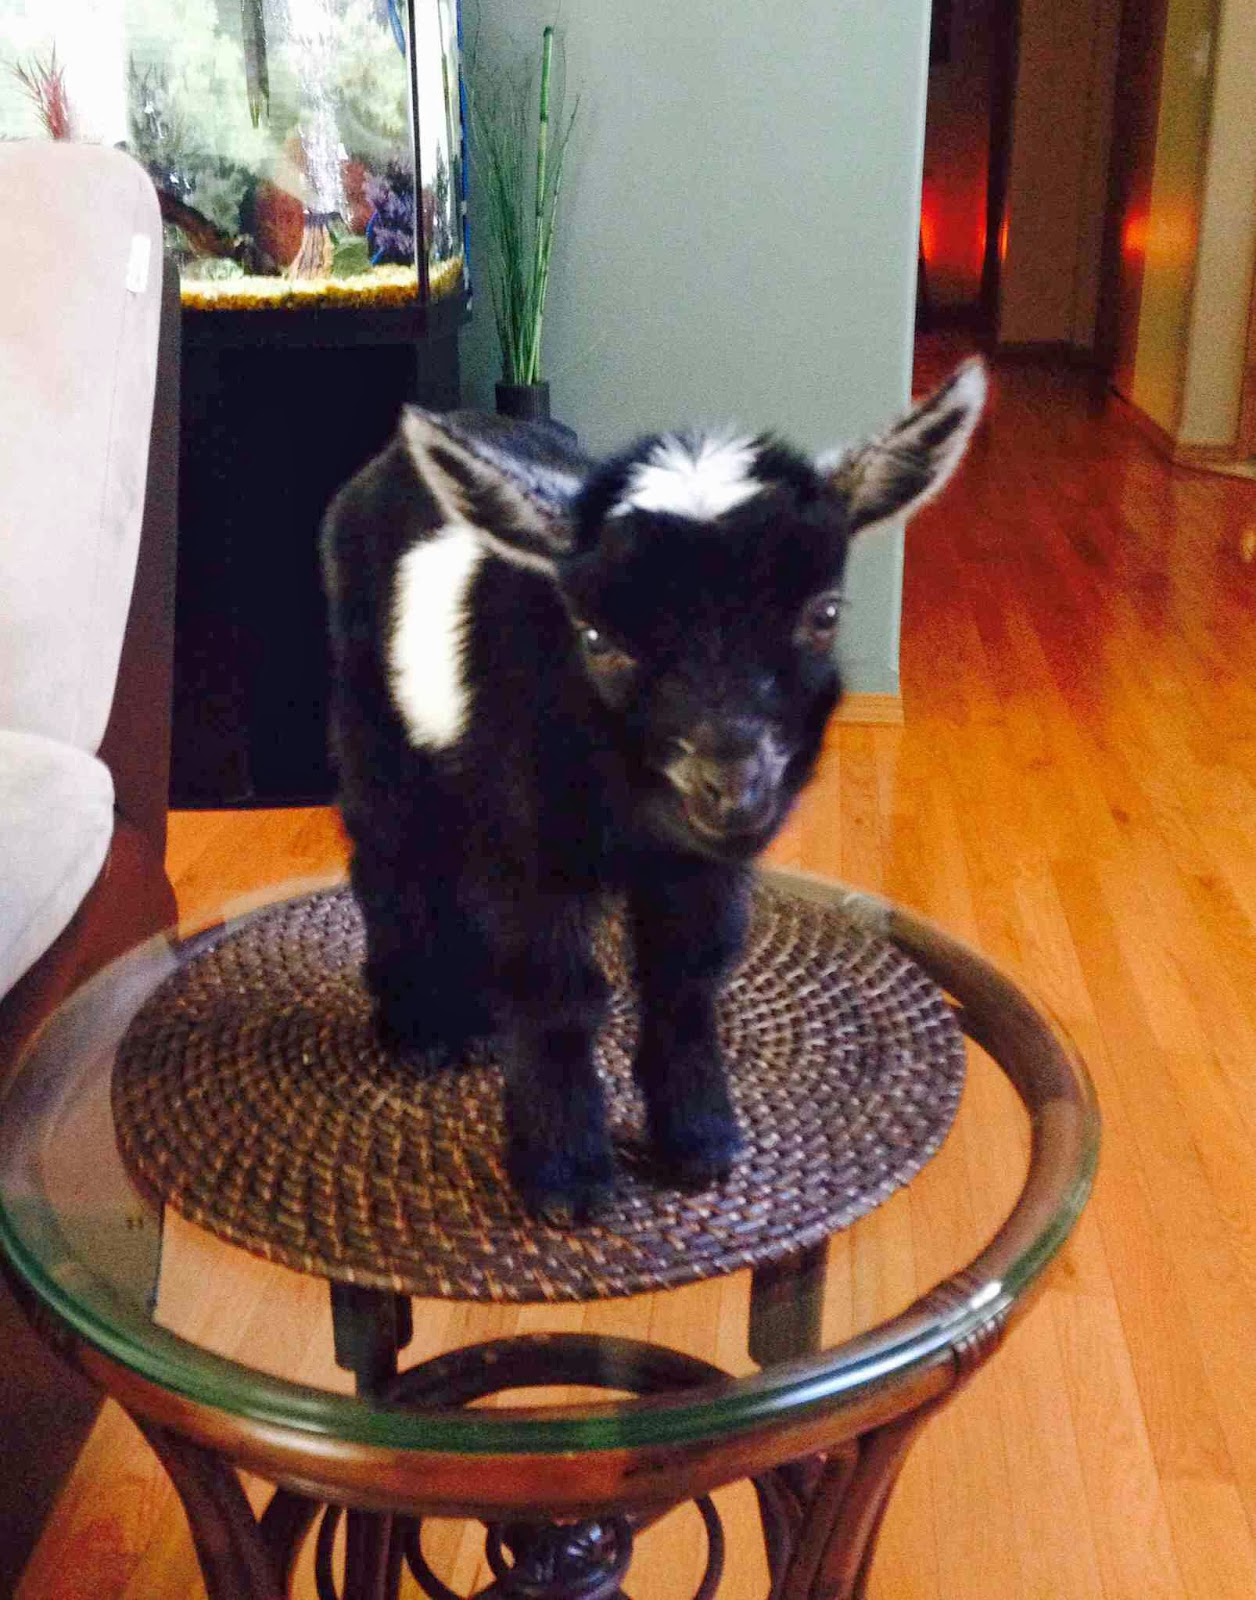 Funny animals of the week - 7 February 2014 (40 pics), baby goat stands on table